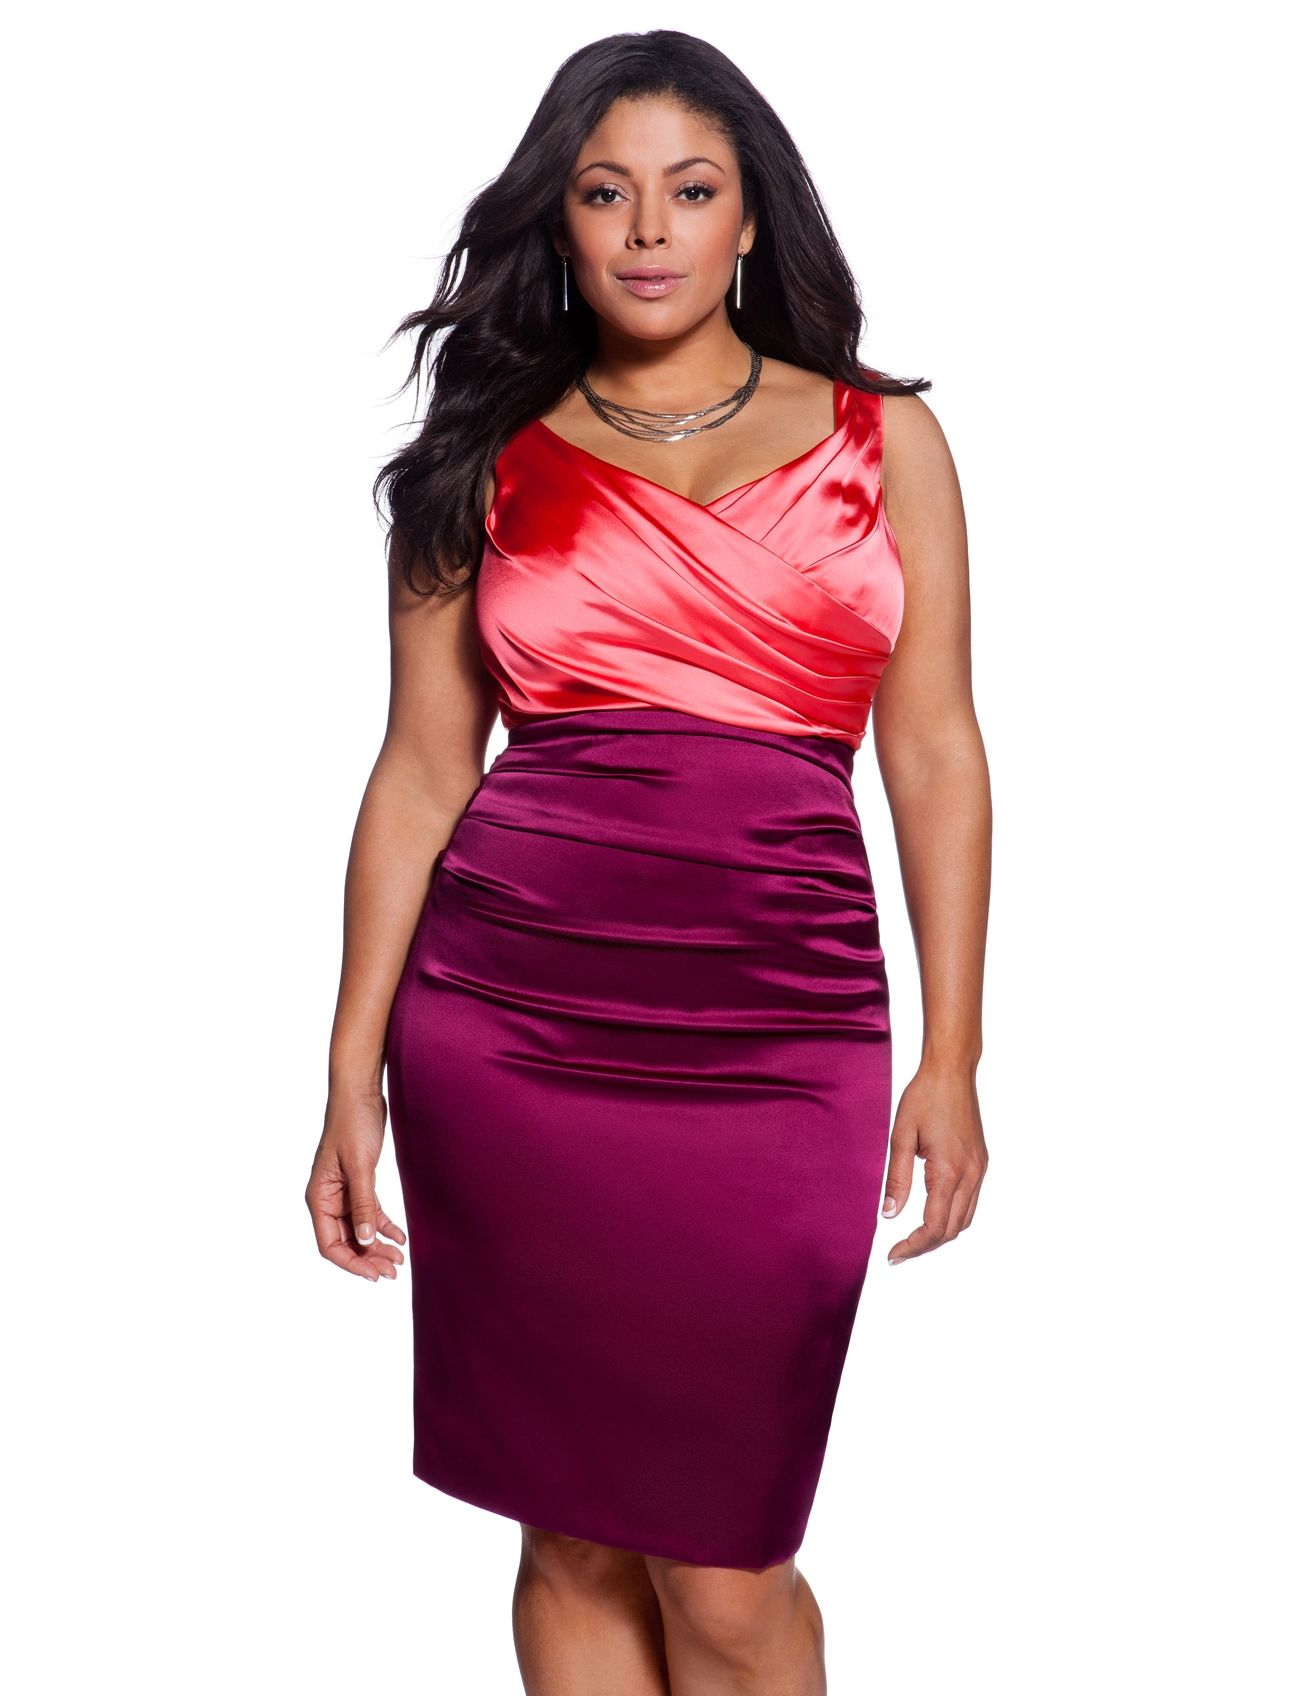 fe572cffa51 Ruched Colorblock Dress - Women s Dresses   Plus Size Dresses - eloquii by  The Limited